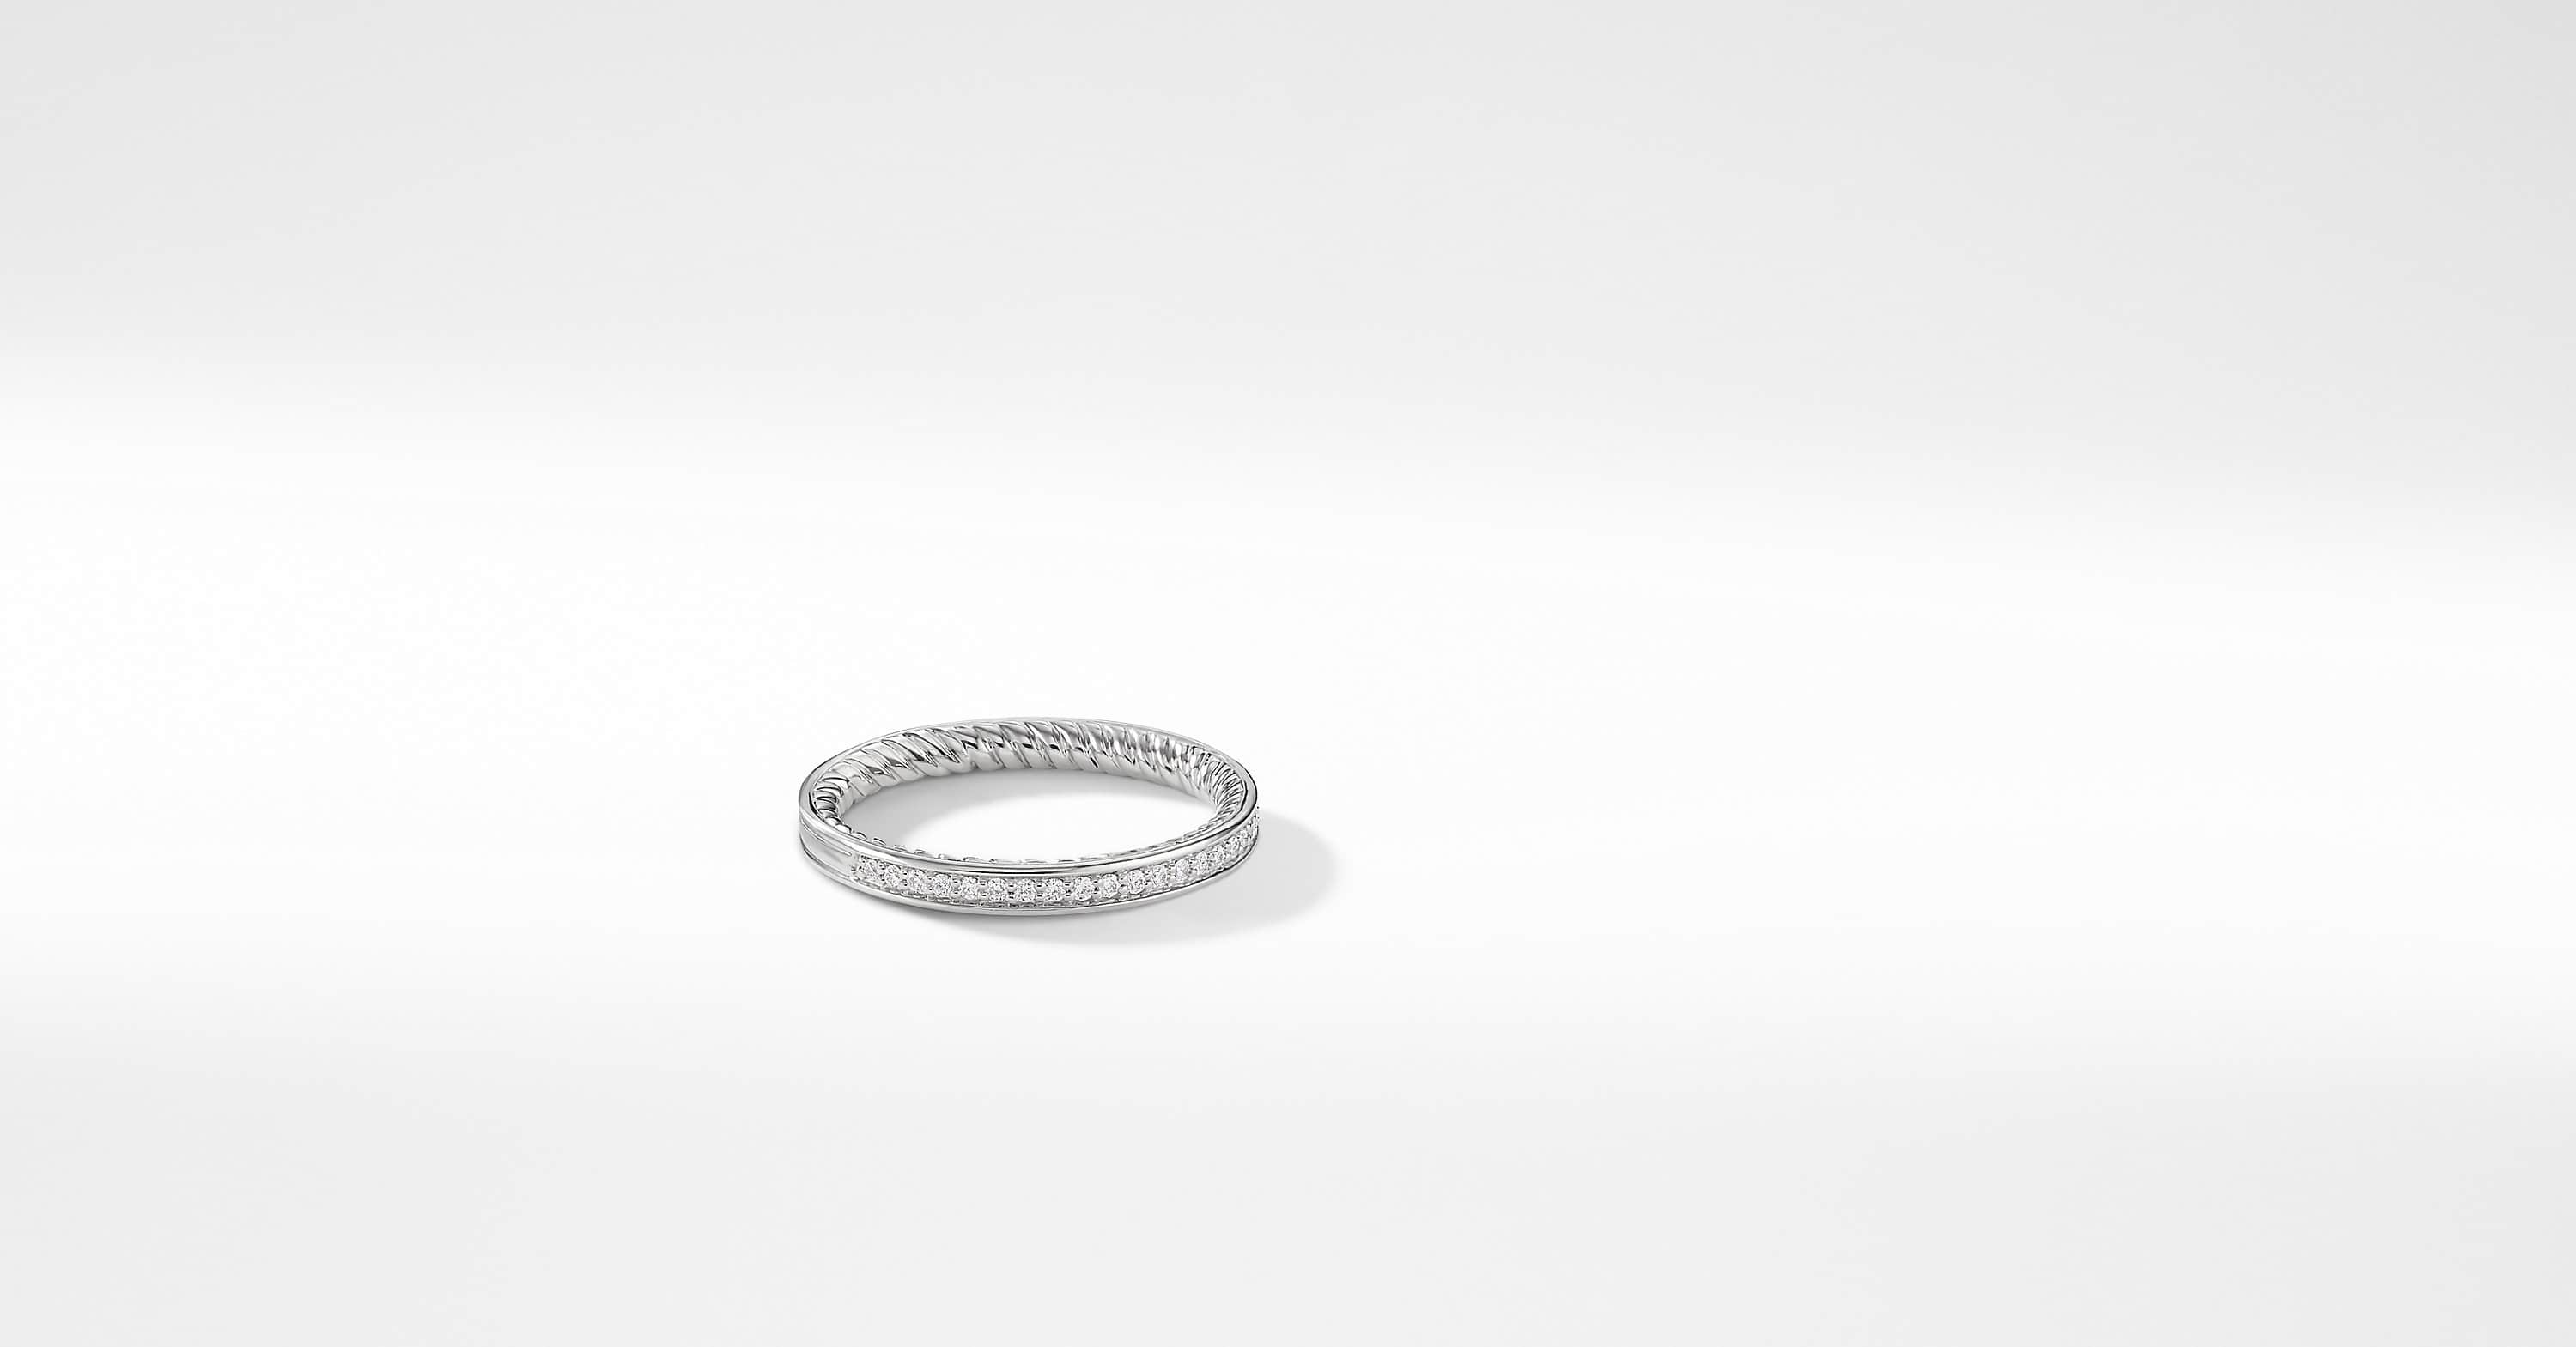 DY Eden Eternity Wedding Band with Diamonds in Platinum, 2.3mm